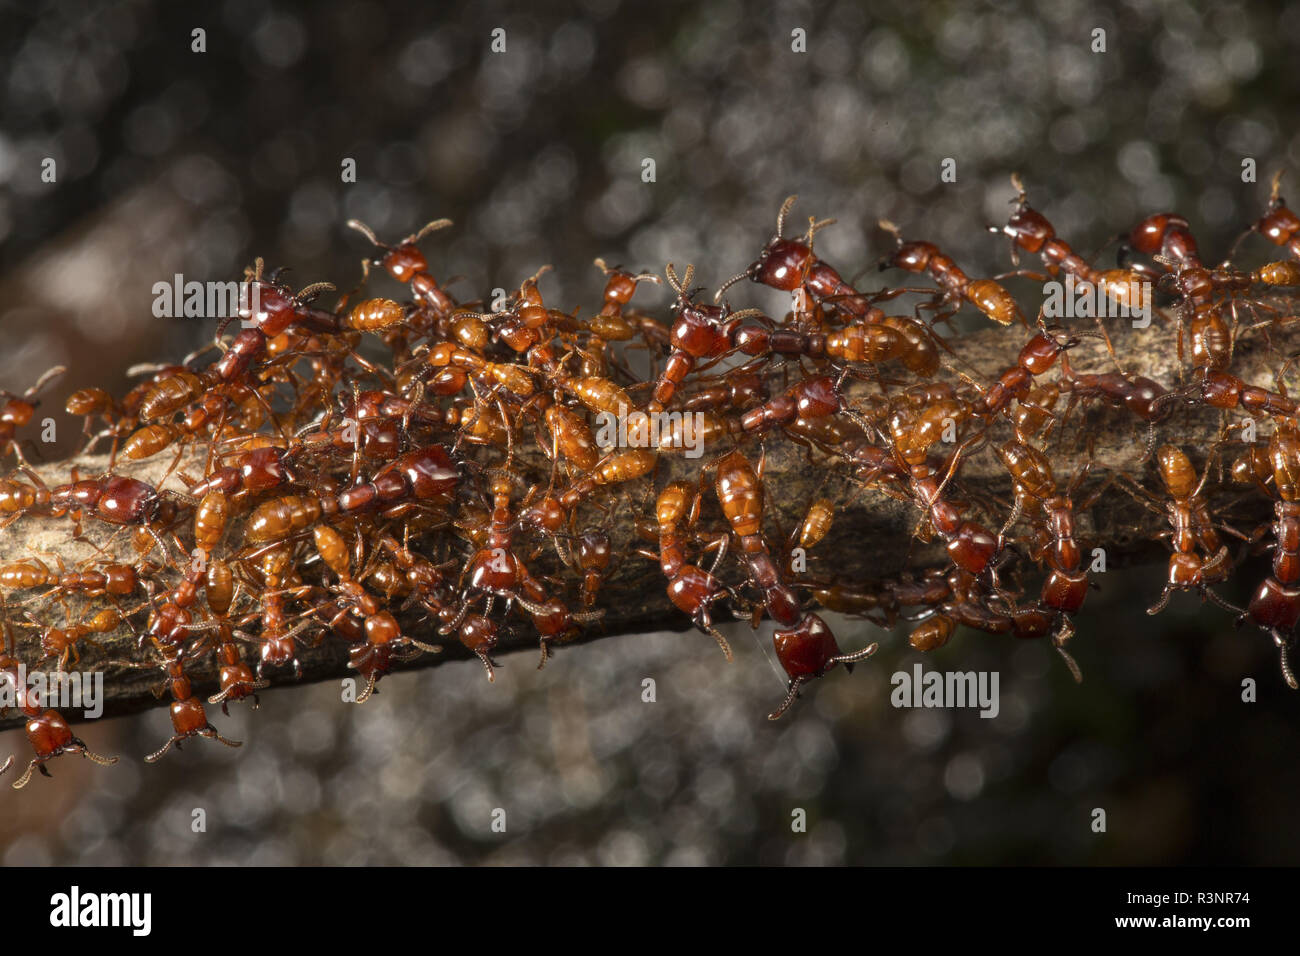 Nomade ants, Cameroon Stock Photo